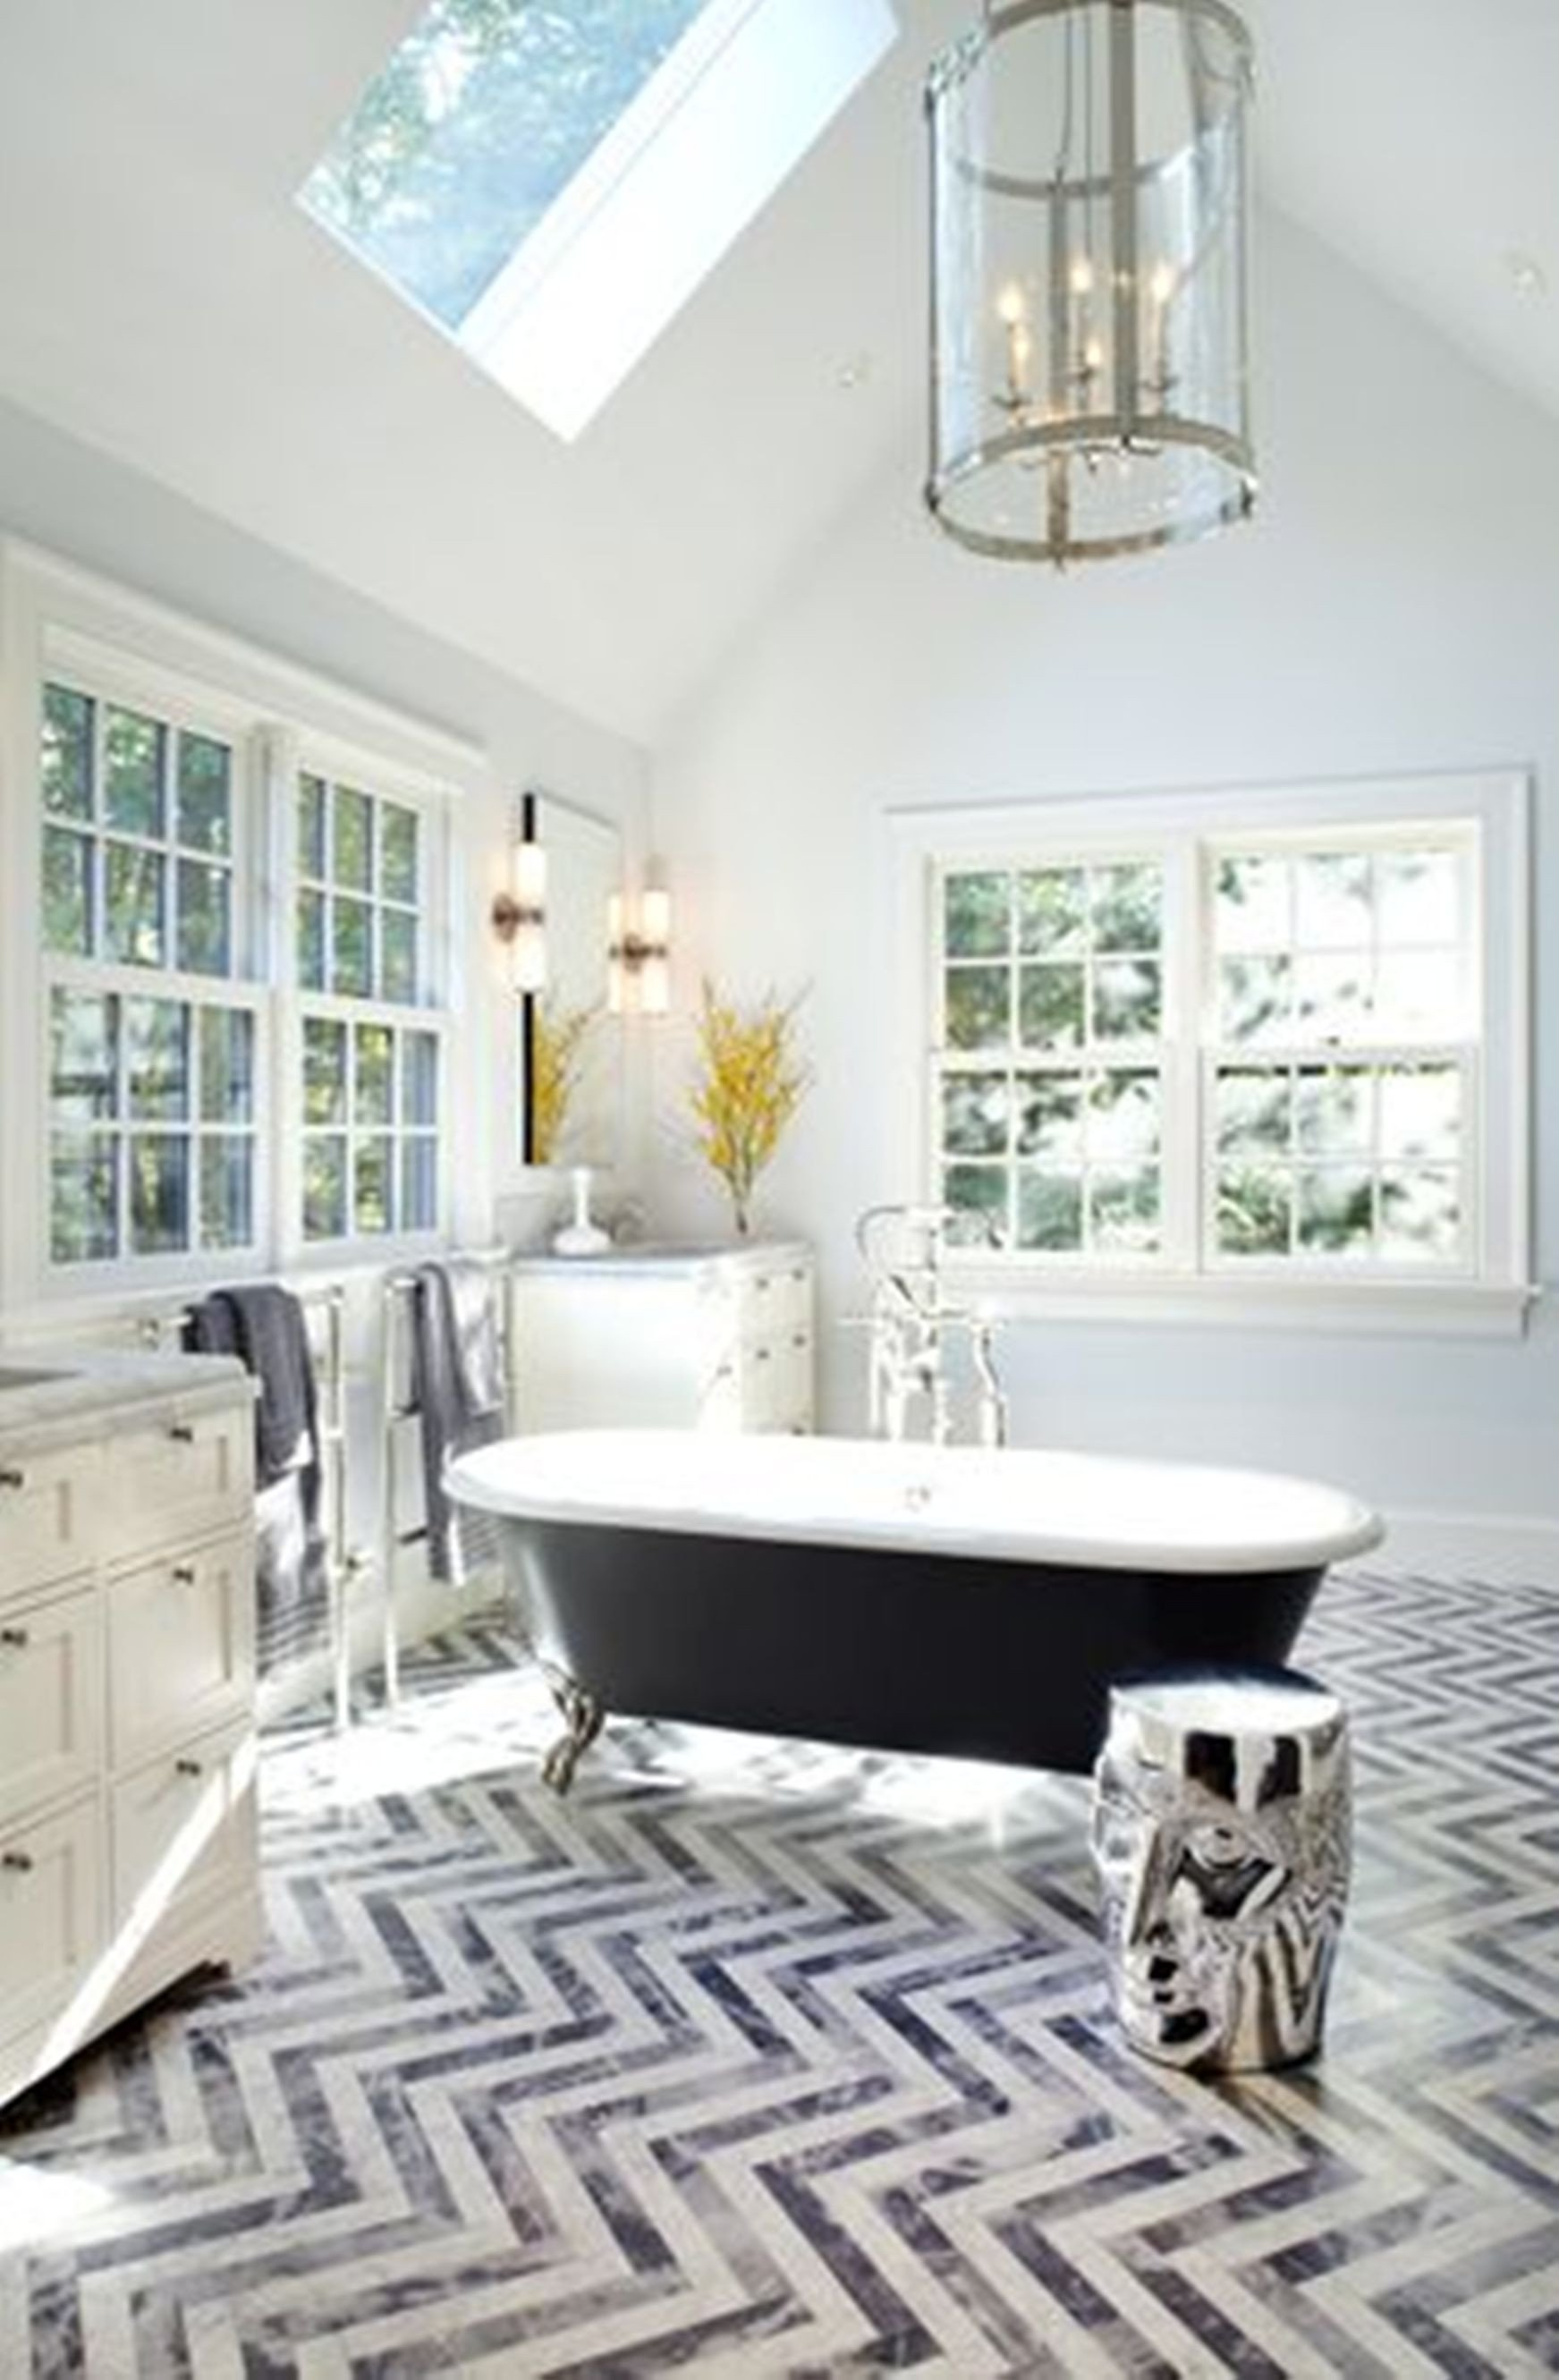 Floor and Decor Bathroom Tile Best Of Floor Tile Designs Ideas to Enhance Your Floor Appearance Midcityeast